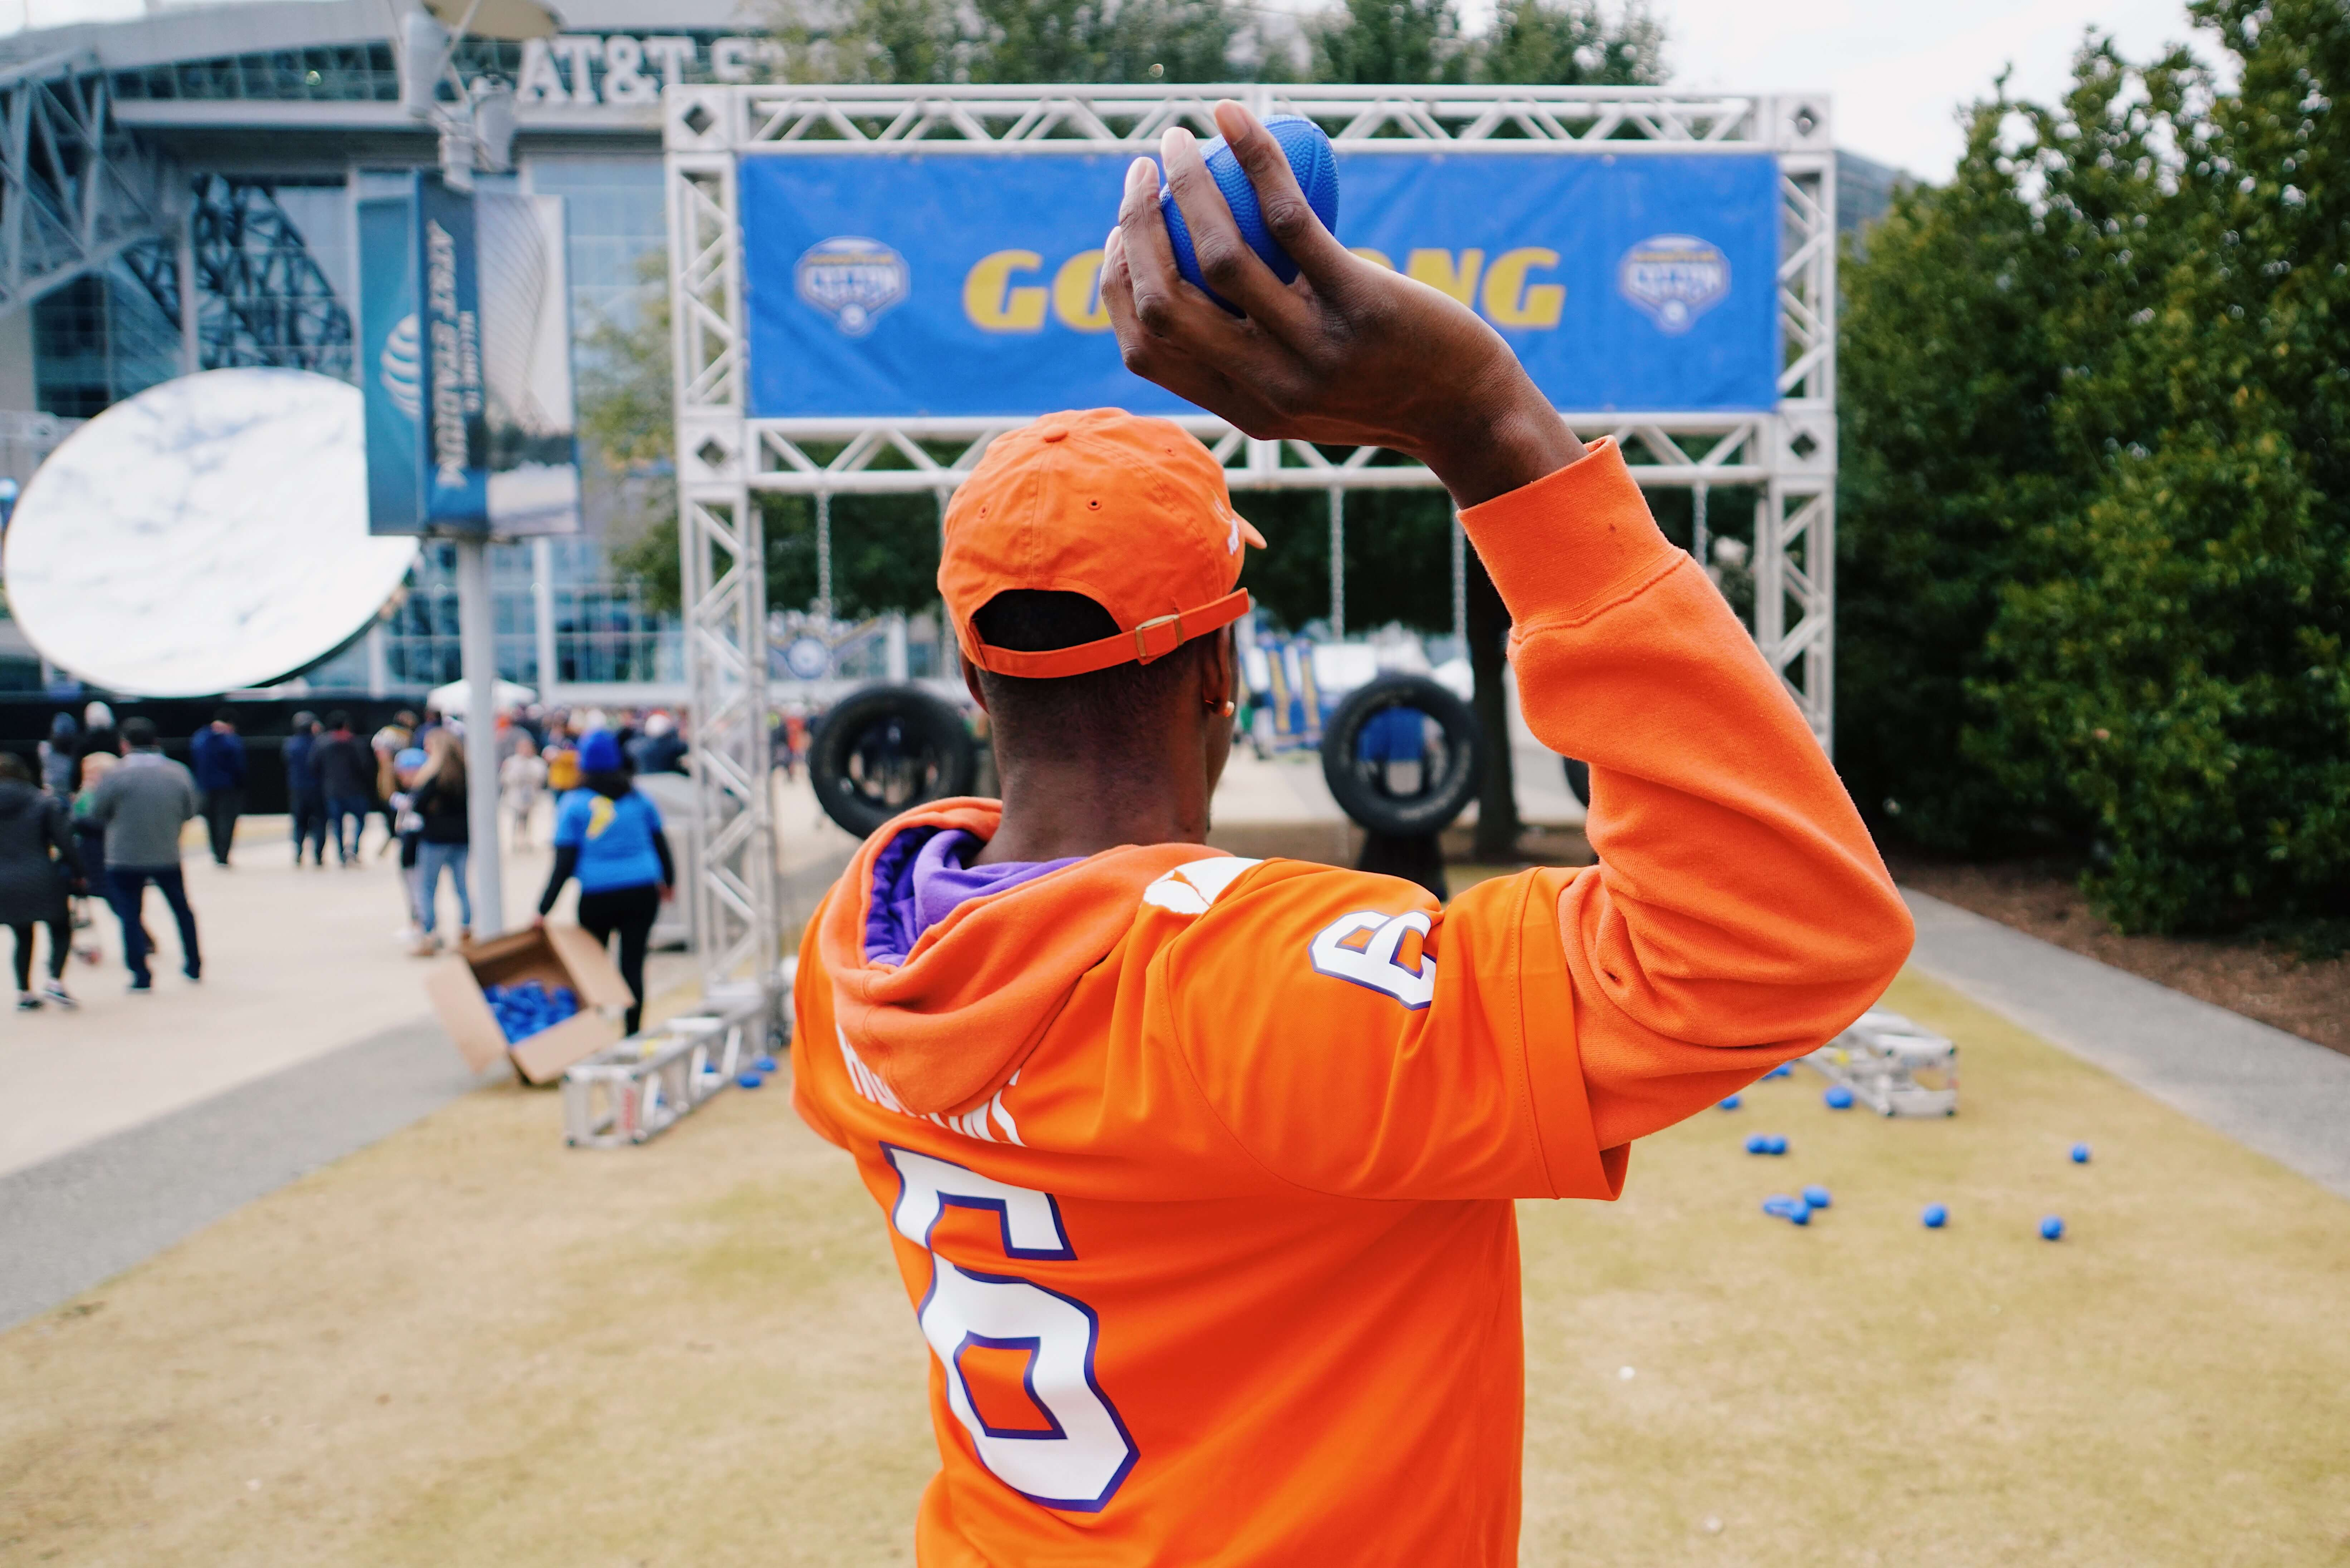 TMA and Goodyear put Cotton Bowl attendees to the test to show themselves blimpworthy through an activation with a series of fan-focused activities.